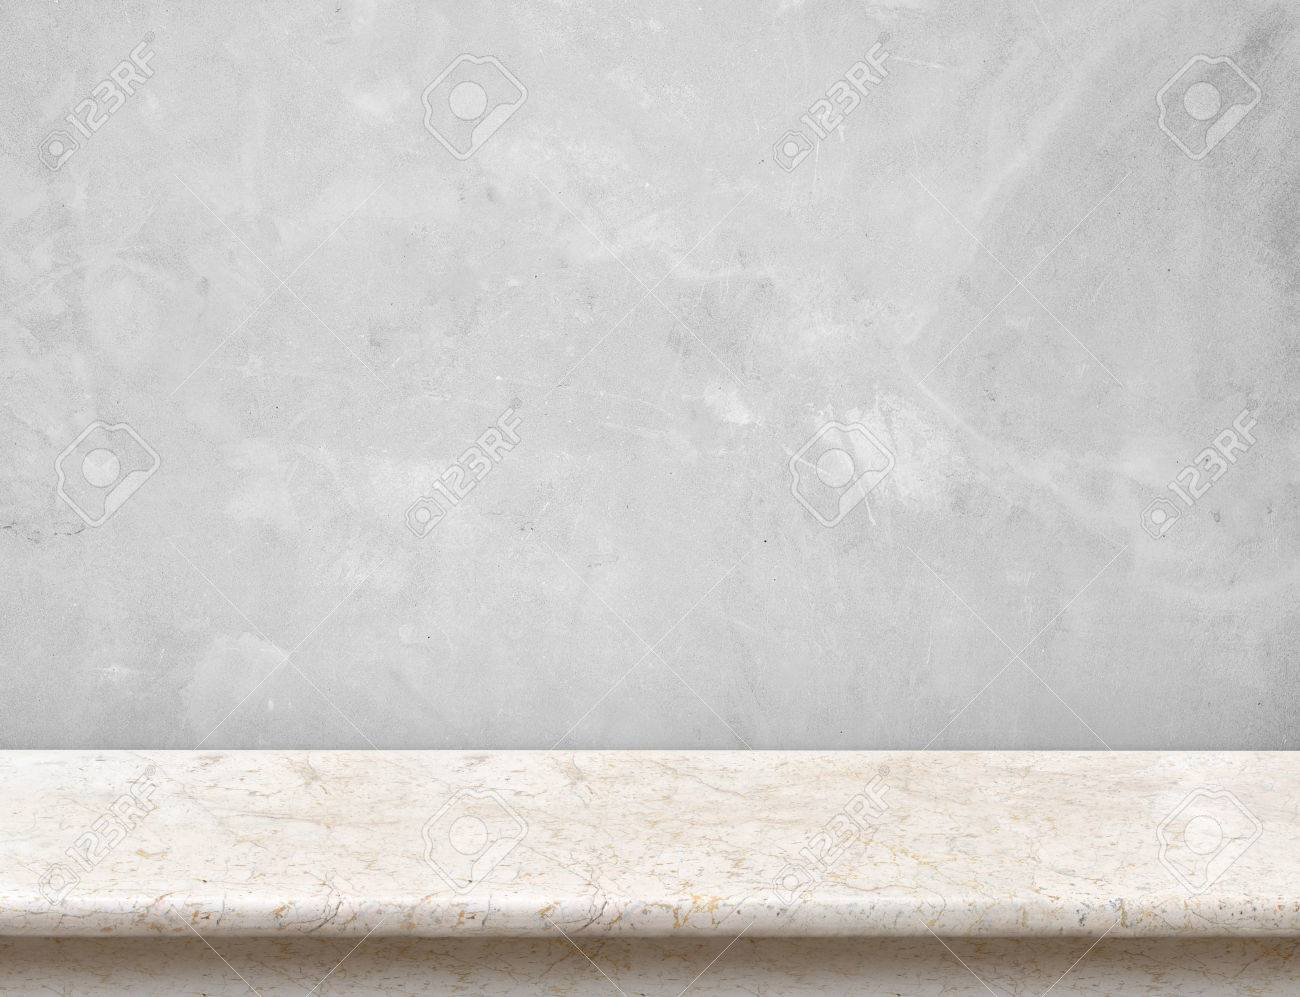 Cool Wallpaper Marble Cream - 70672331-empty-cream-marble-table-top-with-grey-concrete-wall-mock-up-for-display-or-montage-of-product-use-a  Collection_597236.jpg